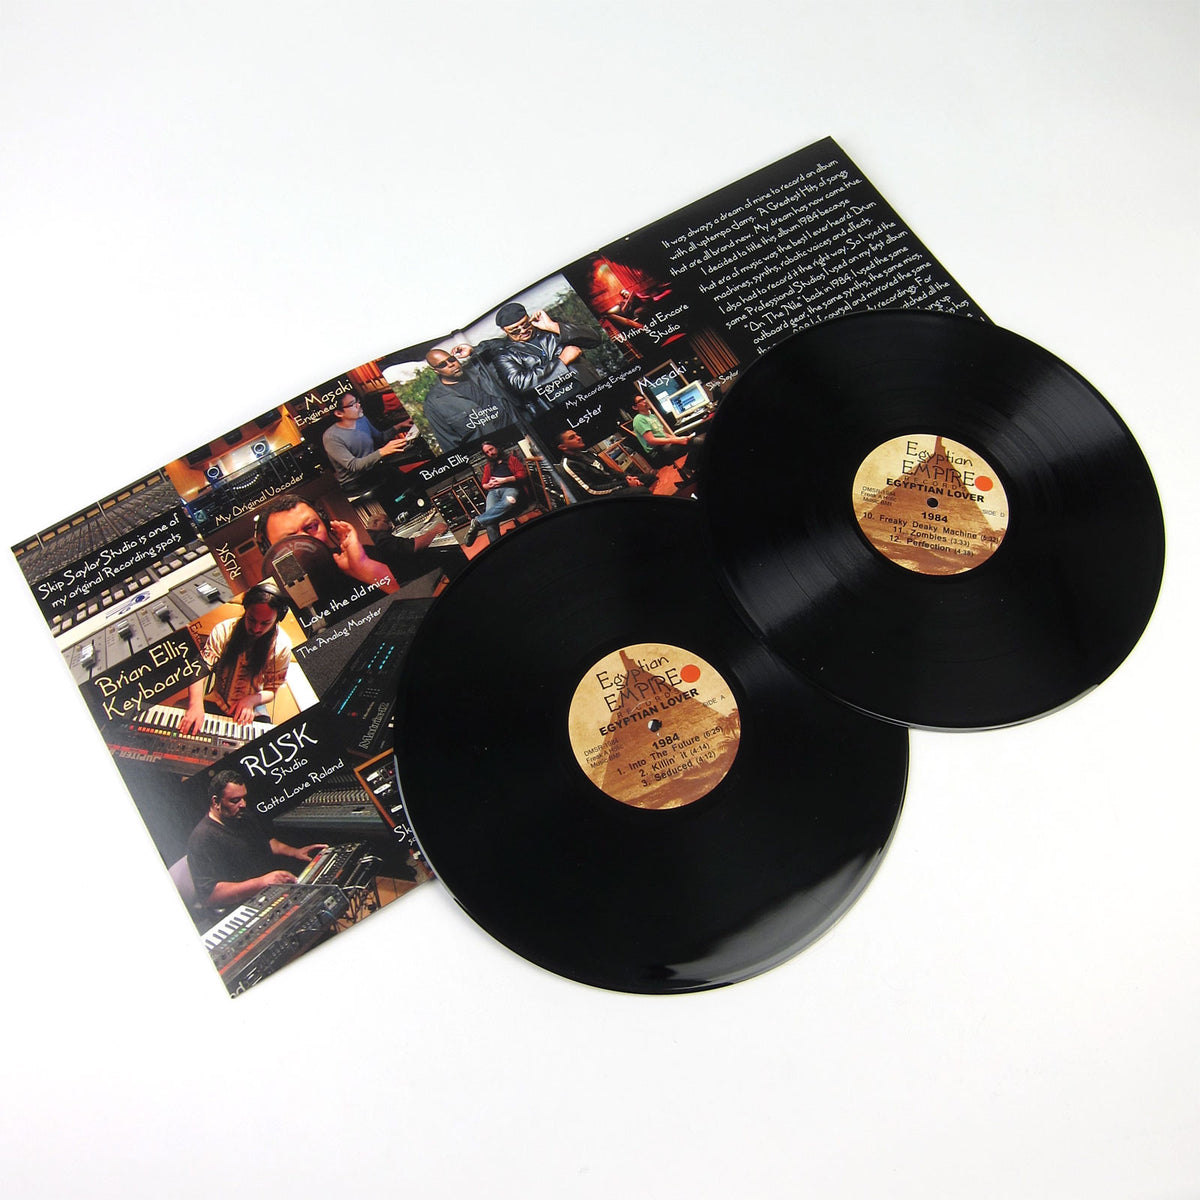 Egyptian Lover: 1984 Vinyl 2LP